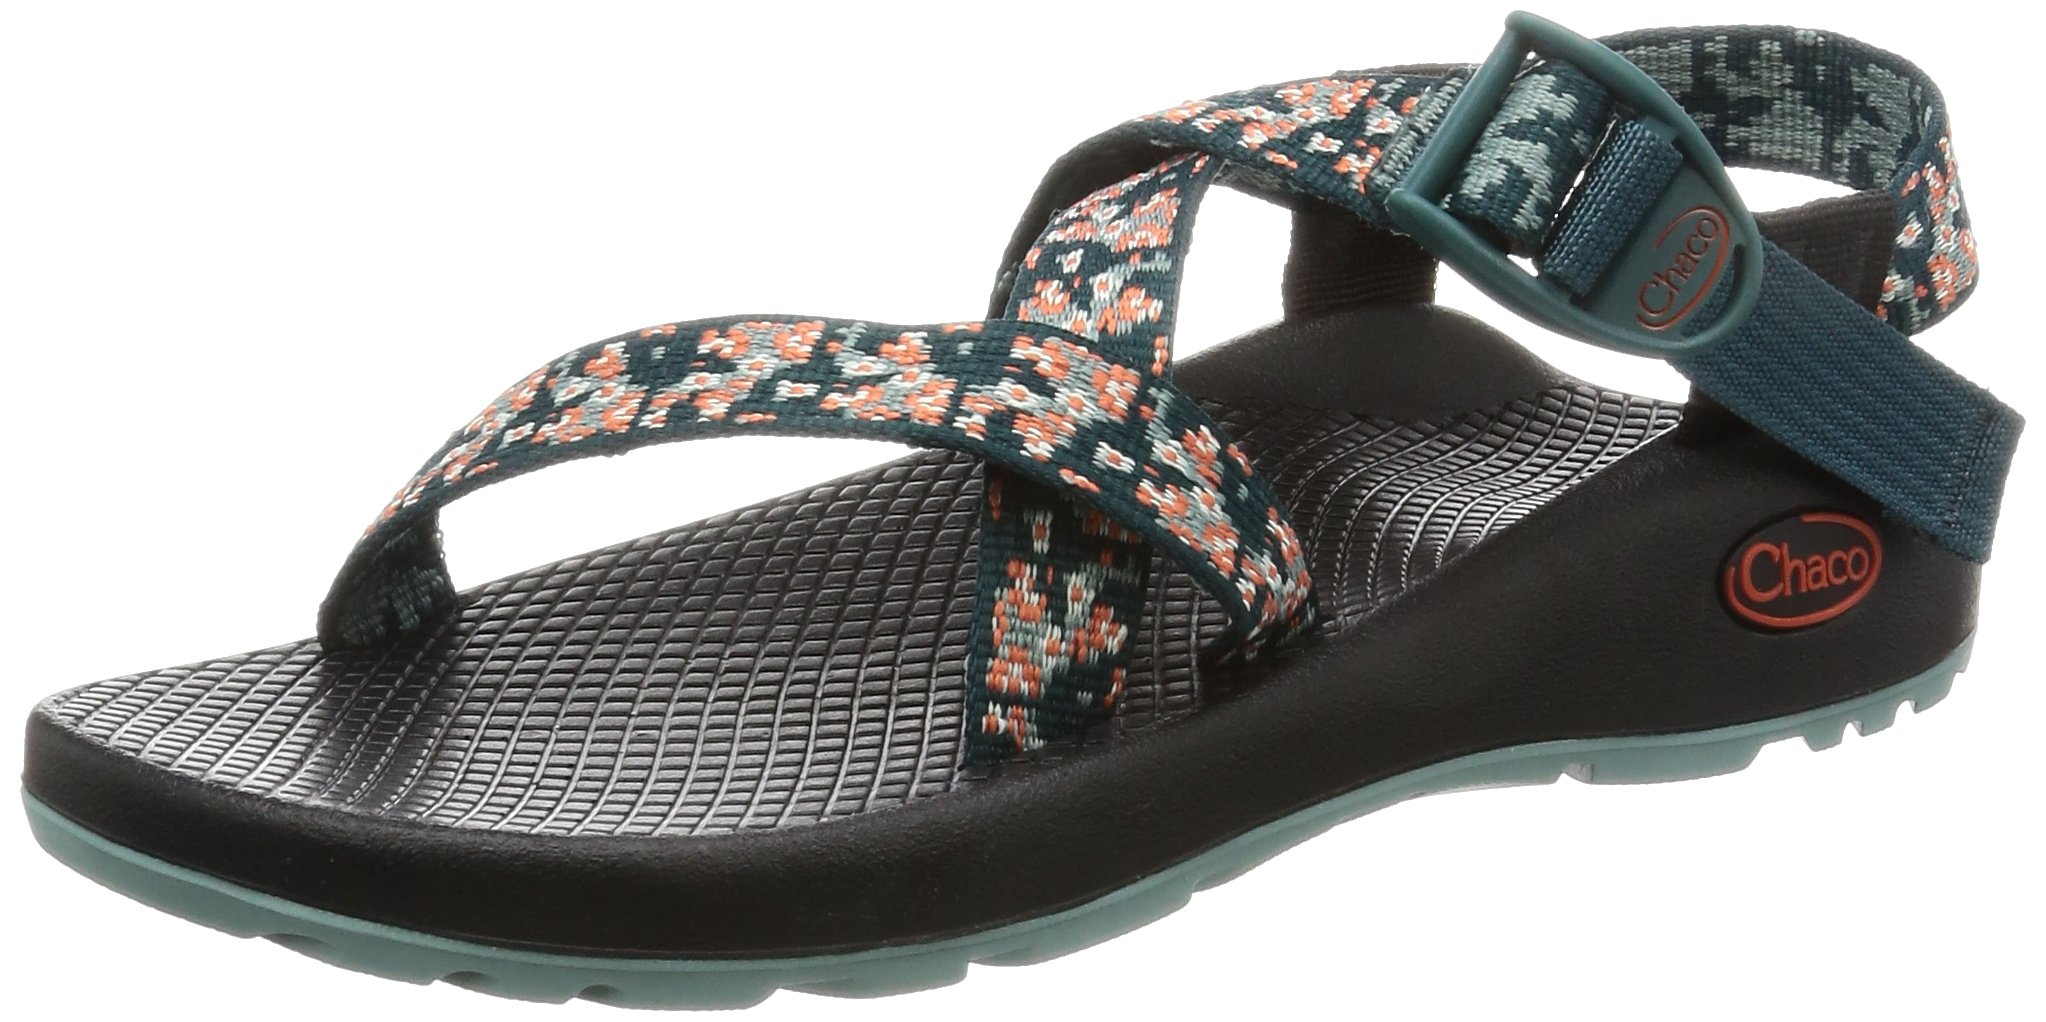 fad368939f18 Galleon - Chaco Women s Z1 Classic Athletic Sandal Trellis Teal 9 M US